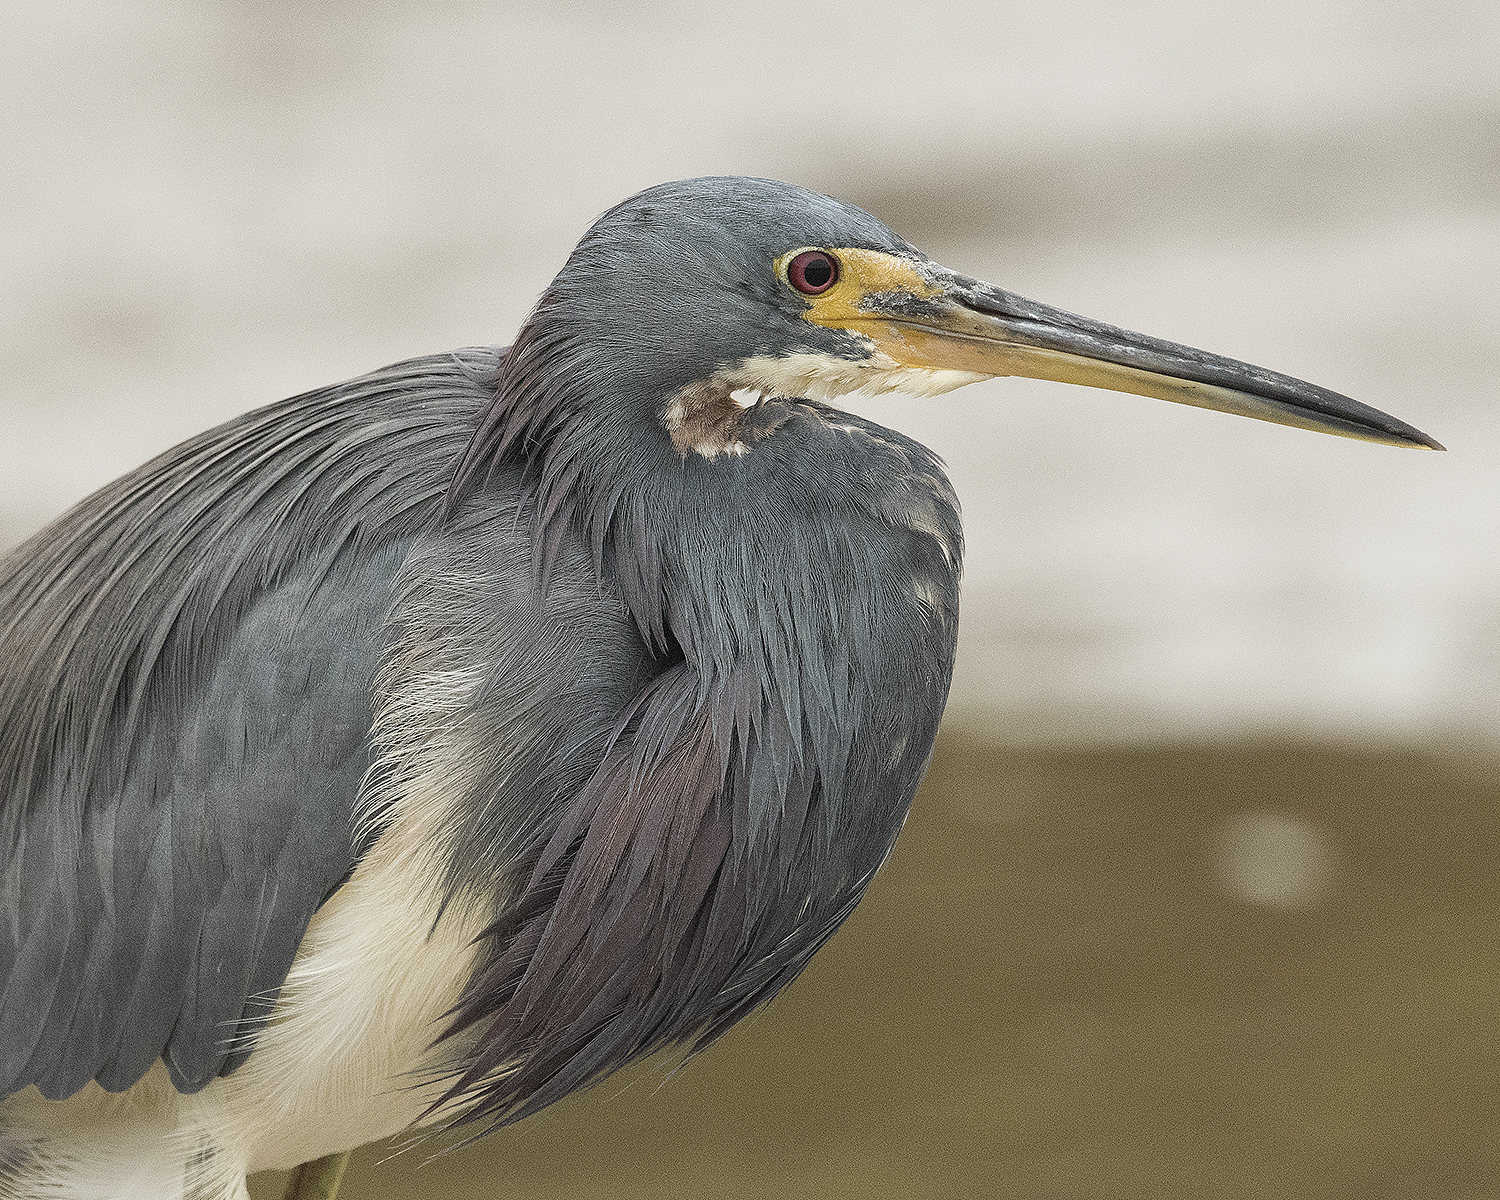 Over sharpened Tricolored Heron - click to enlarge